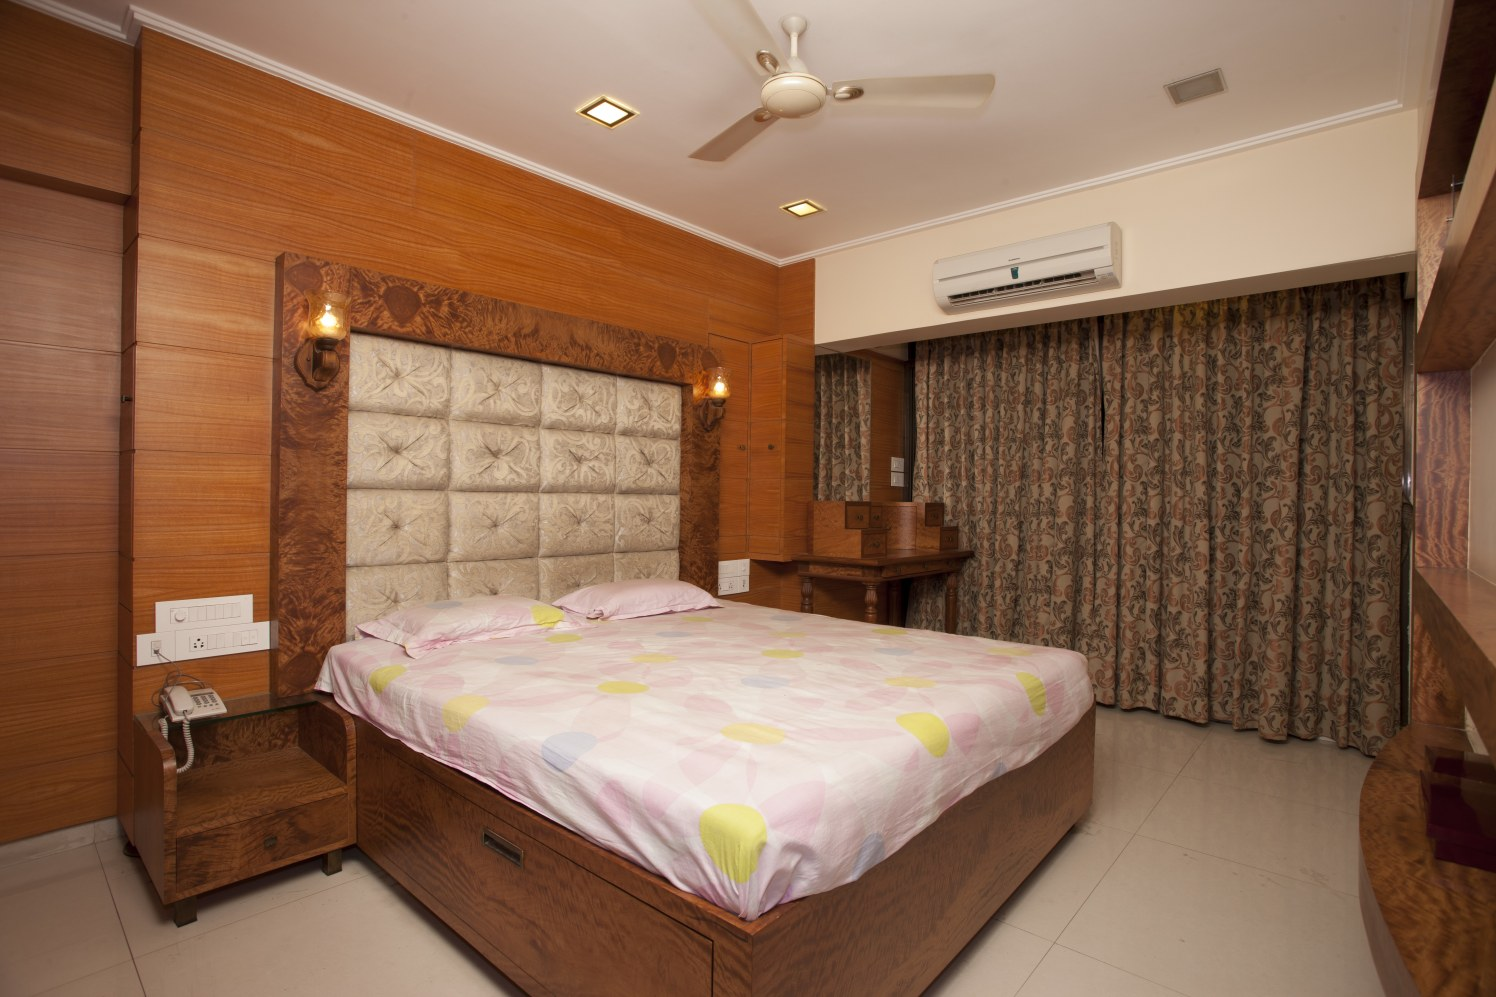 Wooden Bed With Beige Cushioned Head cover by Ravnit Kaur Sharma Bedroom Contemporary | Interior Design Photos & Ideas